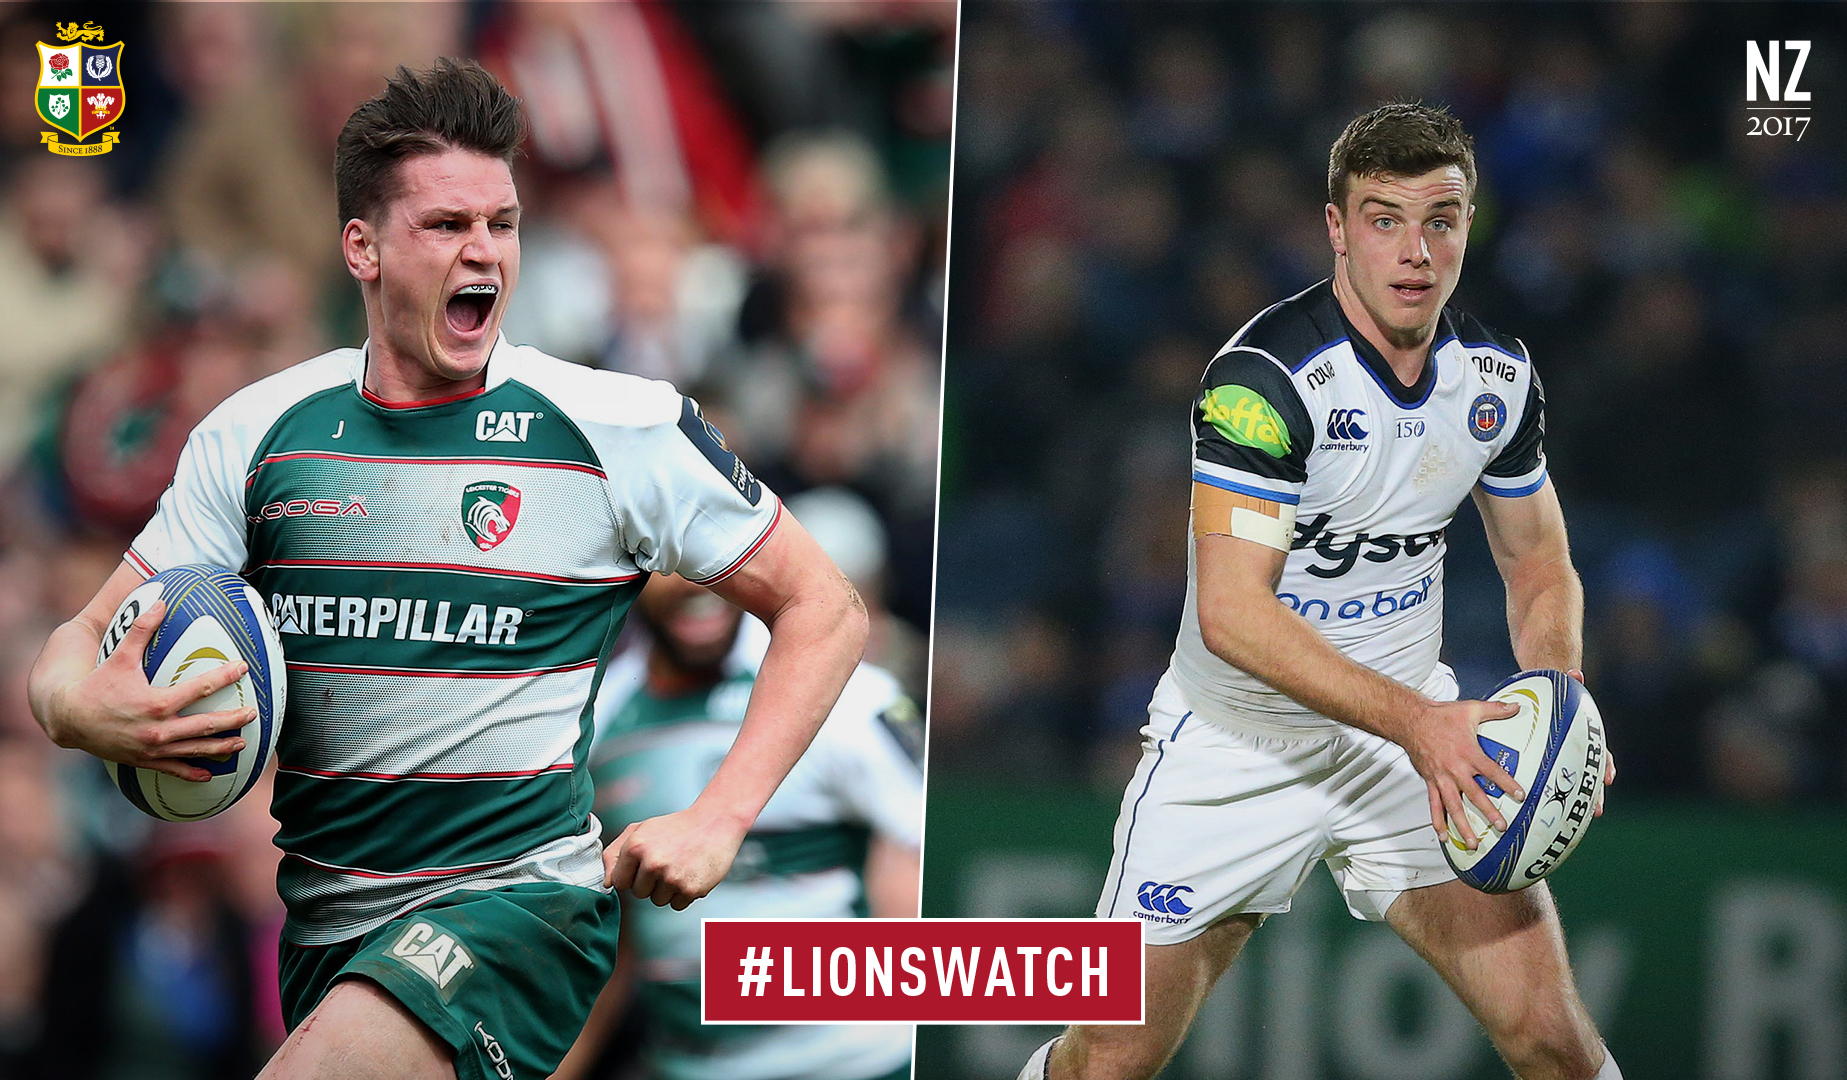 LionsWatch: Aviva Premiership shaping up for derby drama in round four